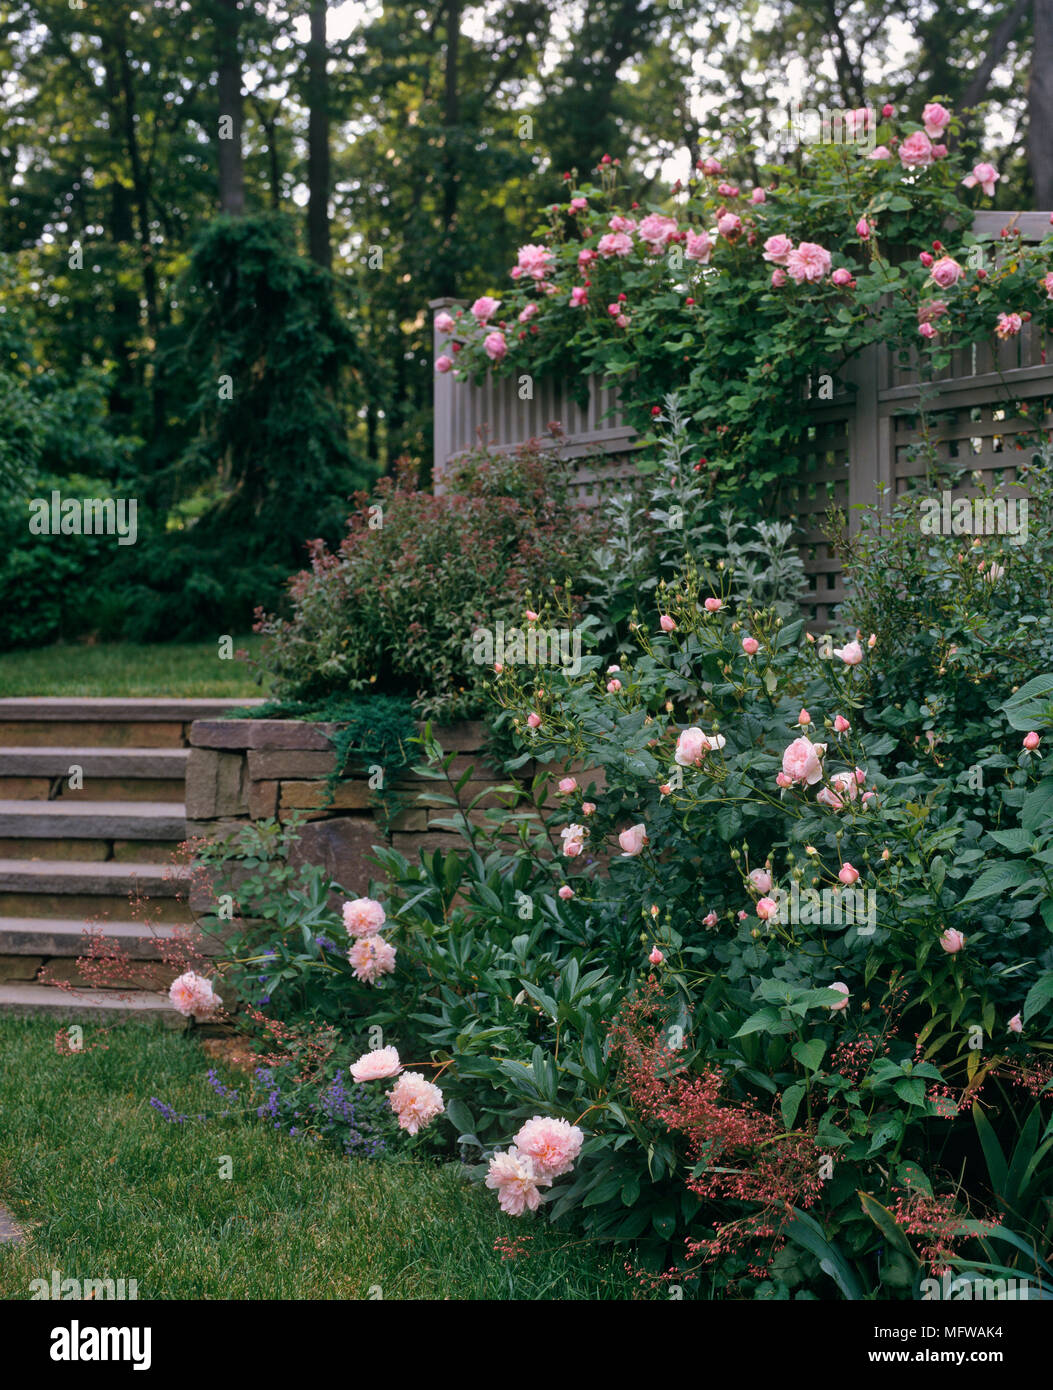 Garden With Pink Roses Growing On Trellis And In Border